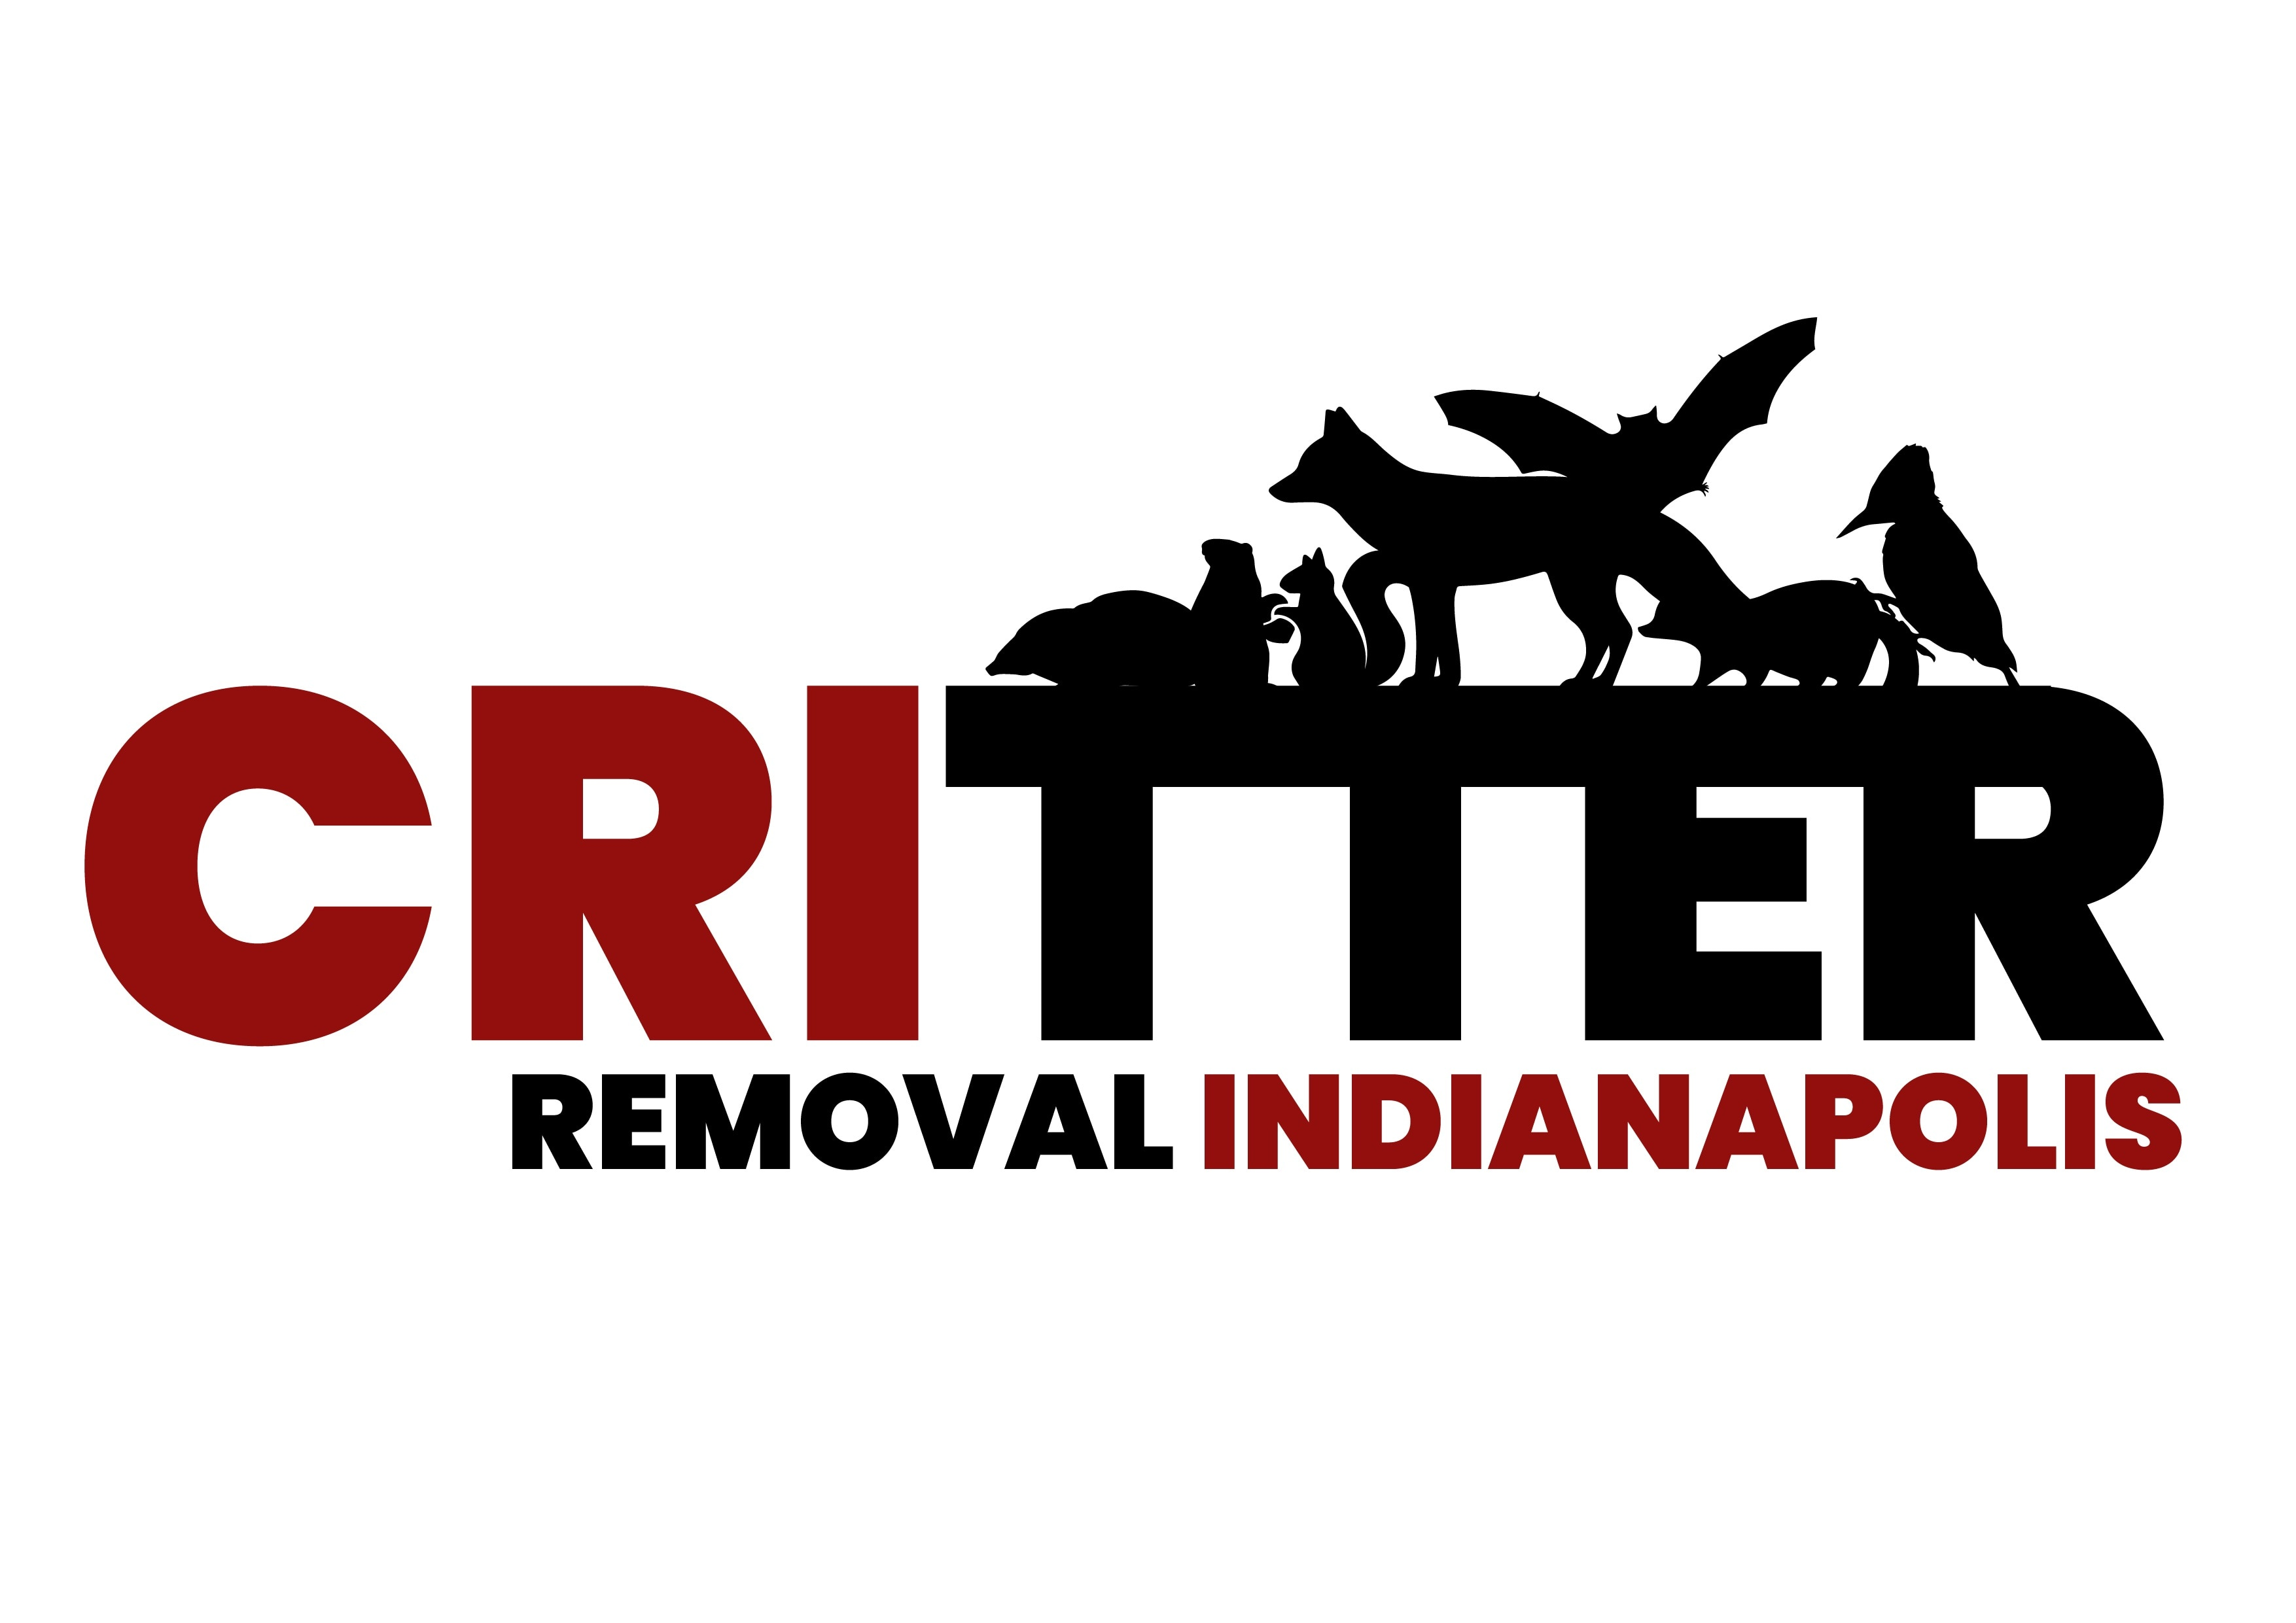 Critter Removal Indianapolis logo